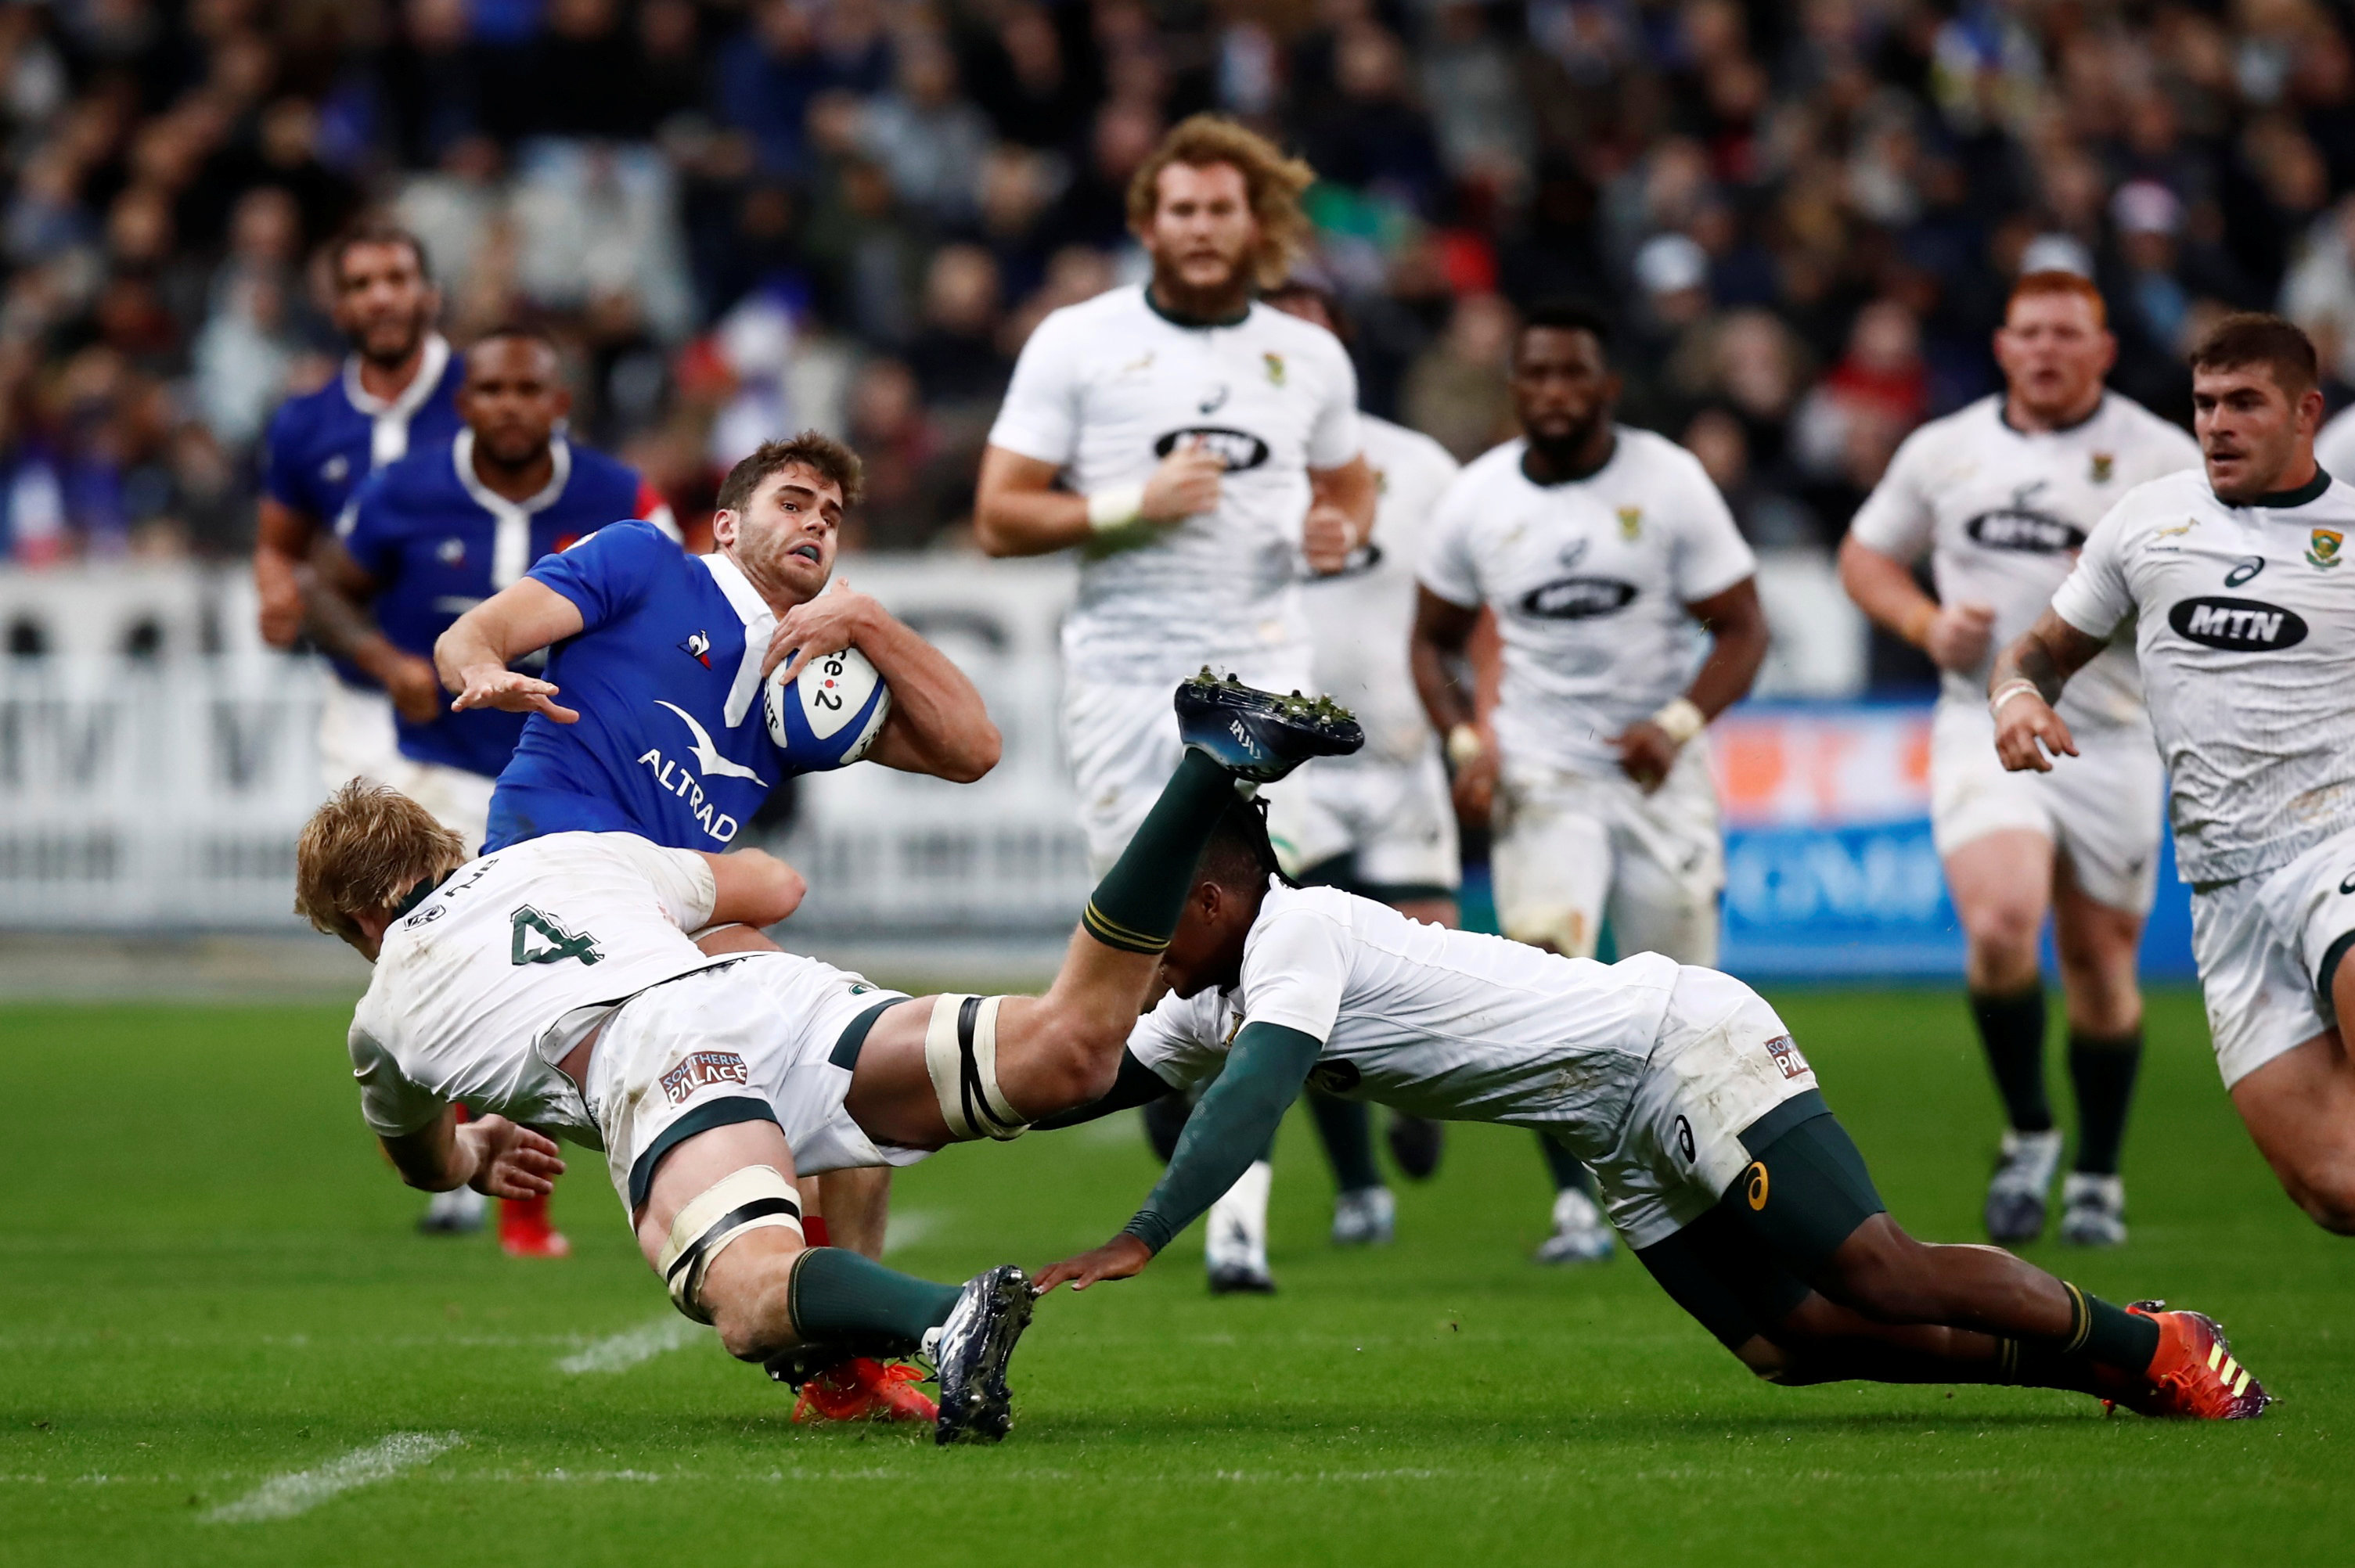 Rugby - XV de France - Rugby : le document qui pourrait chambouler le calendrier international